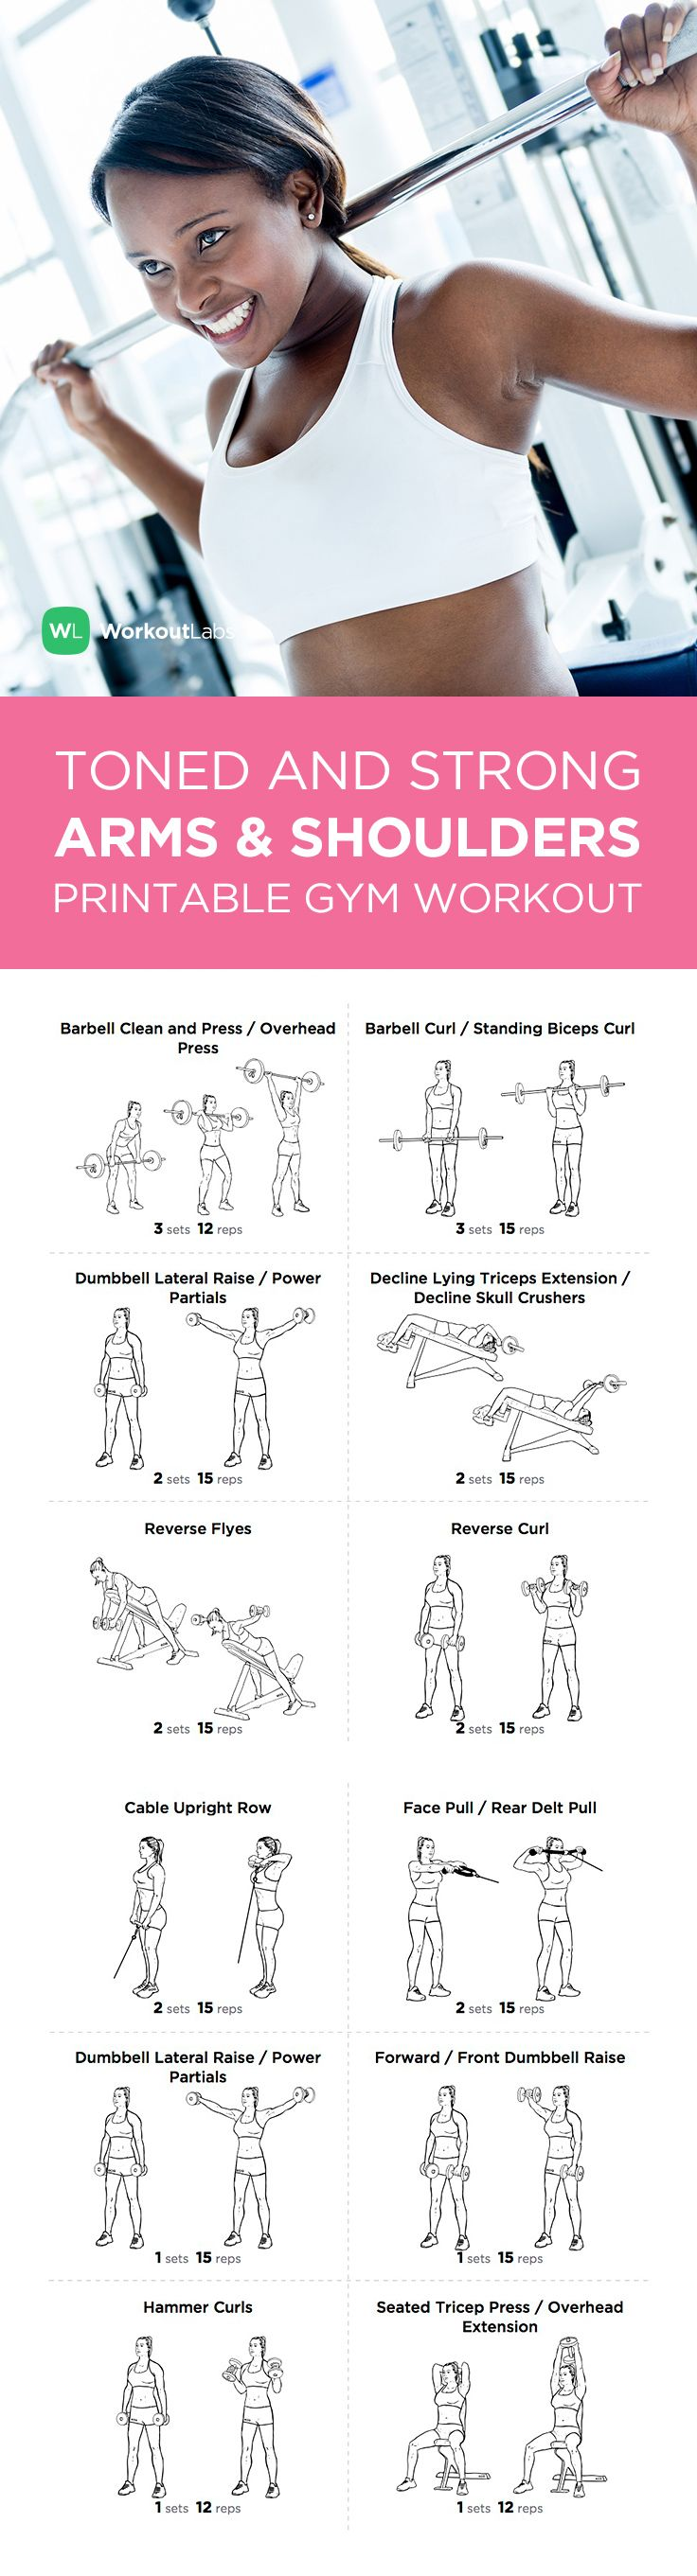 Toned Strong Arms Shoulders Gym Workout For Men Women A FREE PDF Of This